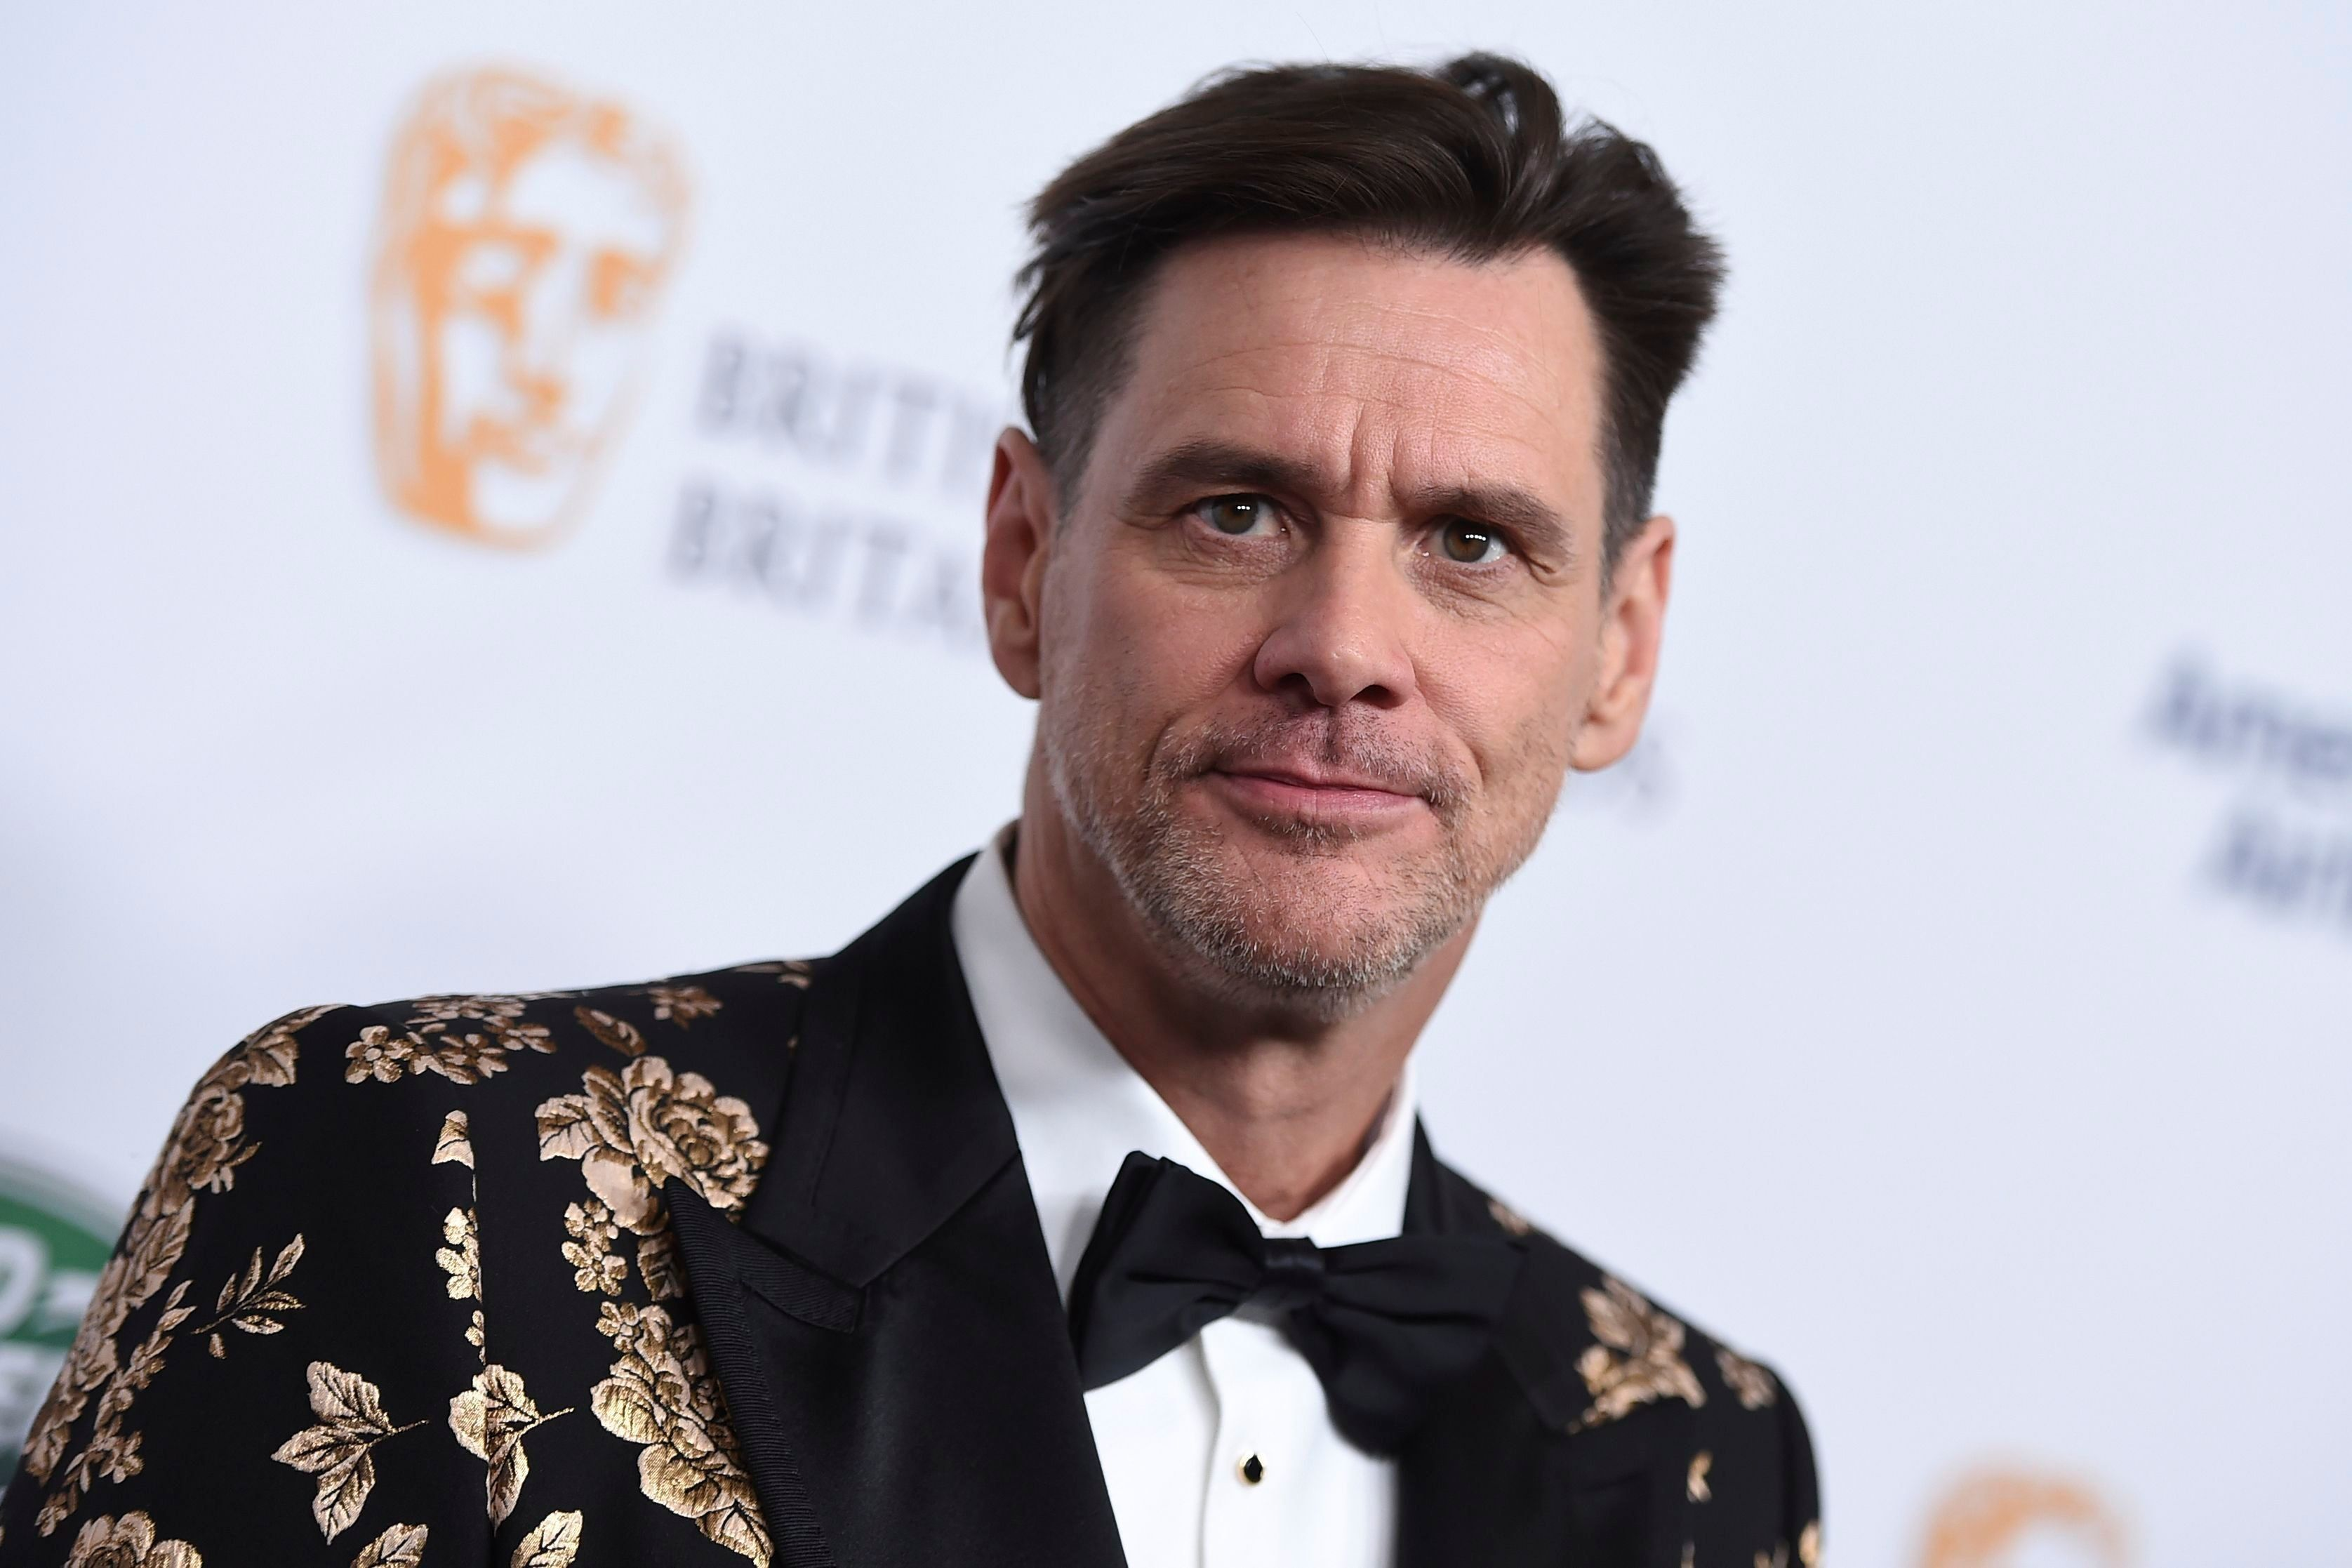 Carrey continues to use his politically-charged artwork to criticize the president.